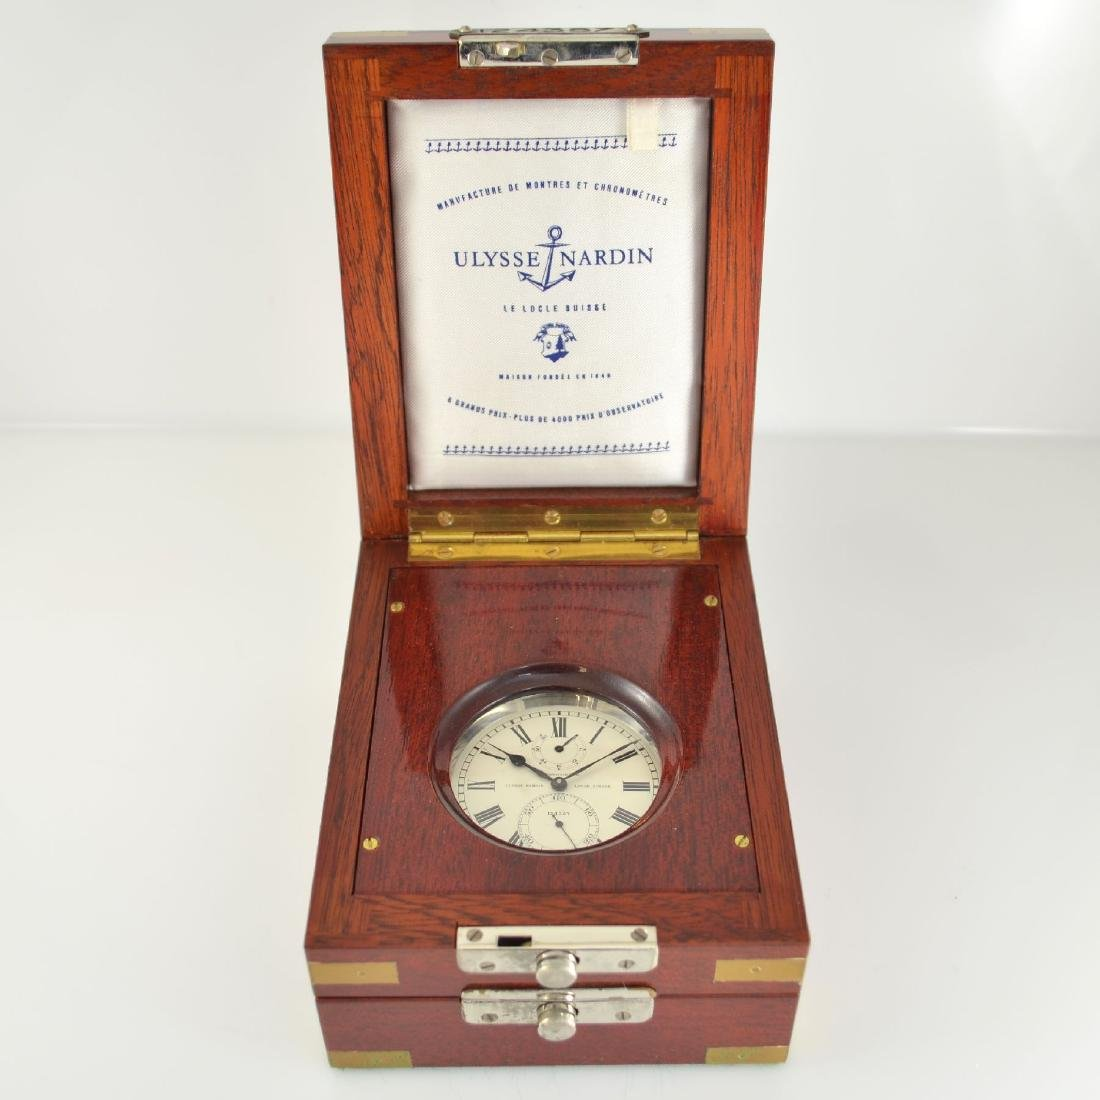 ULYSSE NARDIN rare deck watch with seconds-contact